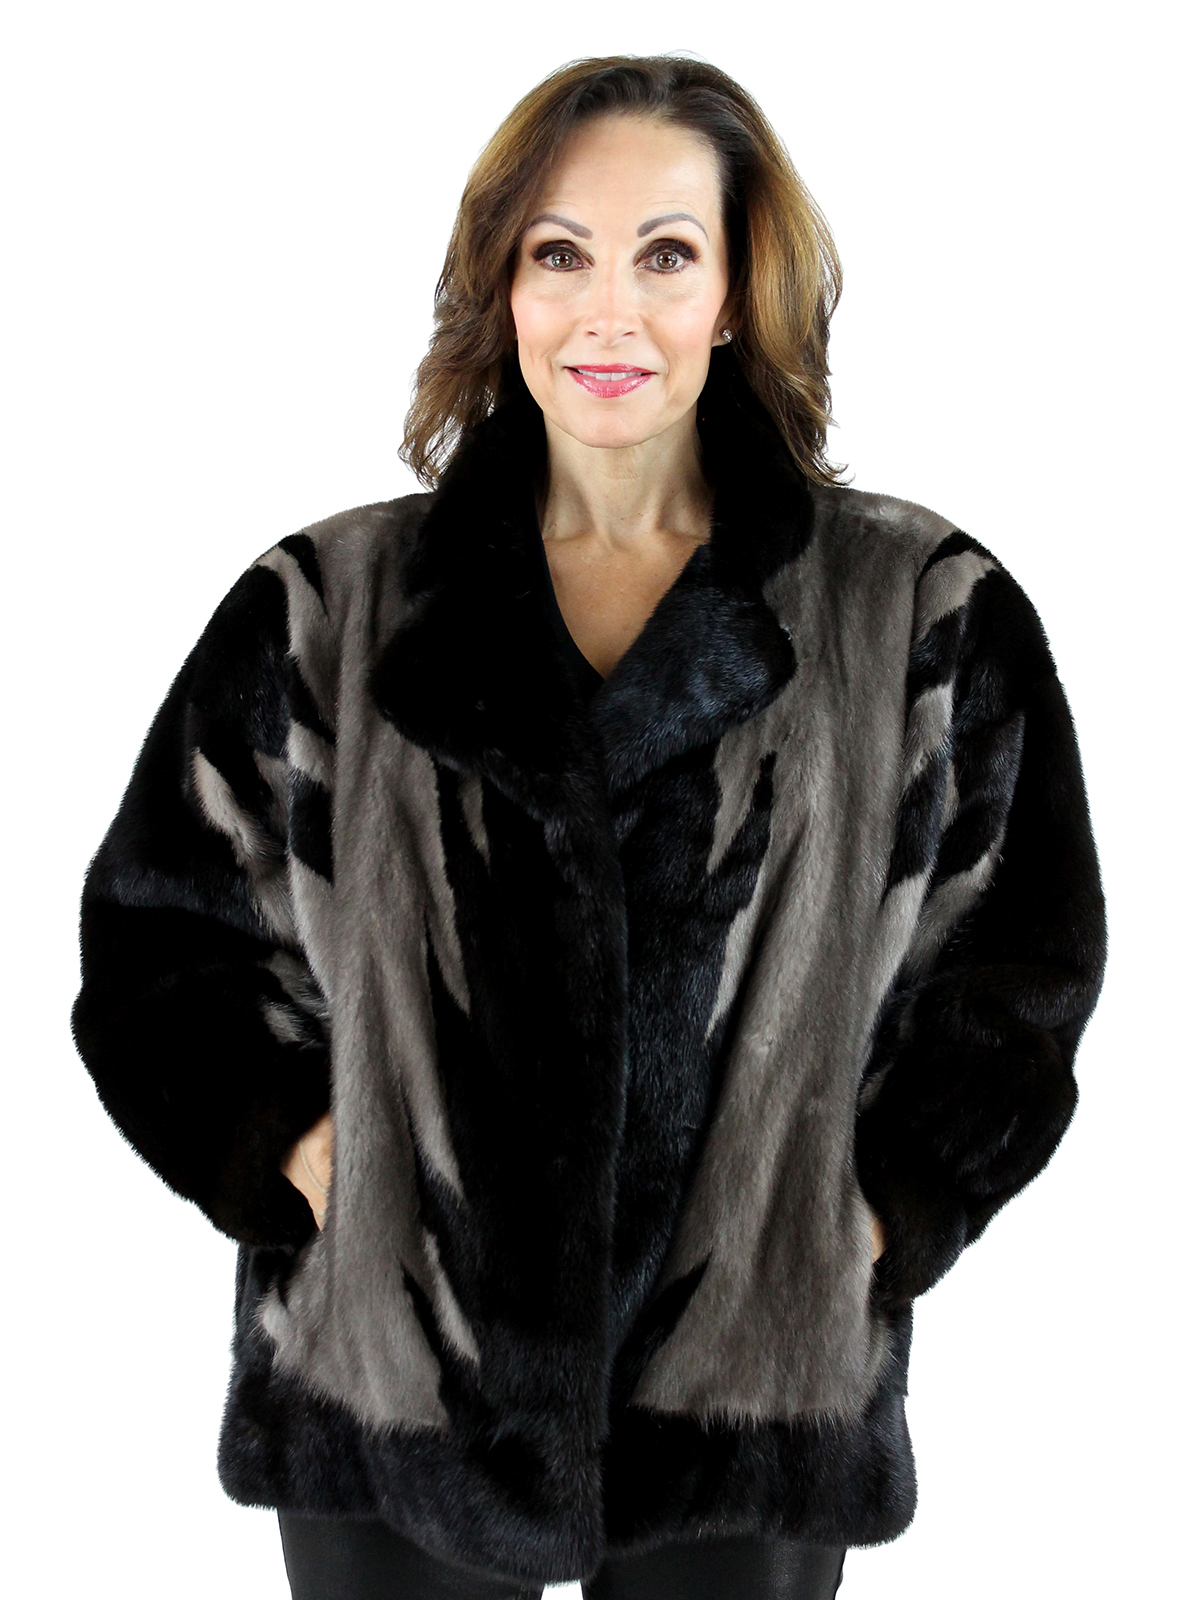 Woman's Ranch and Blue Iris Mink Fur Jacket